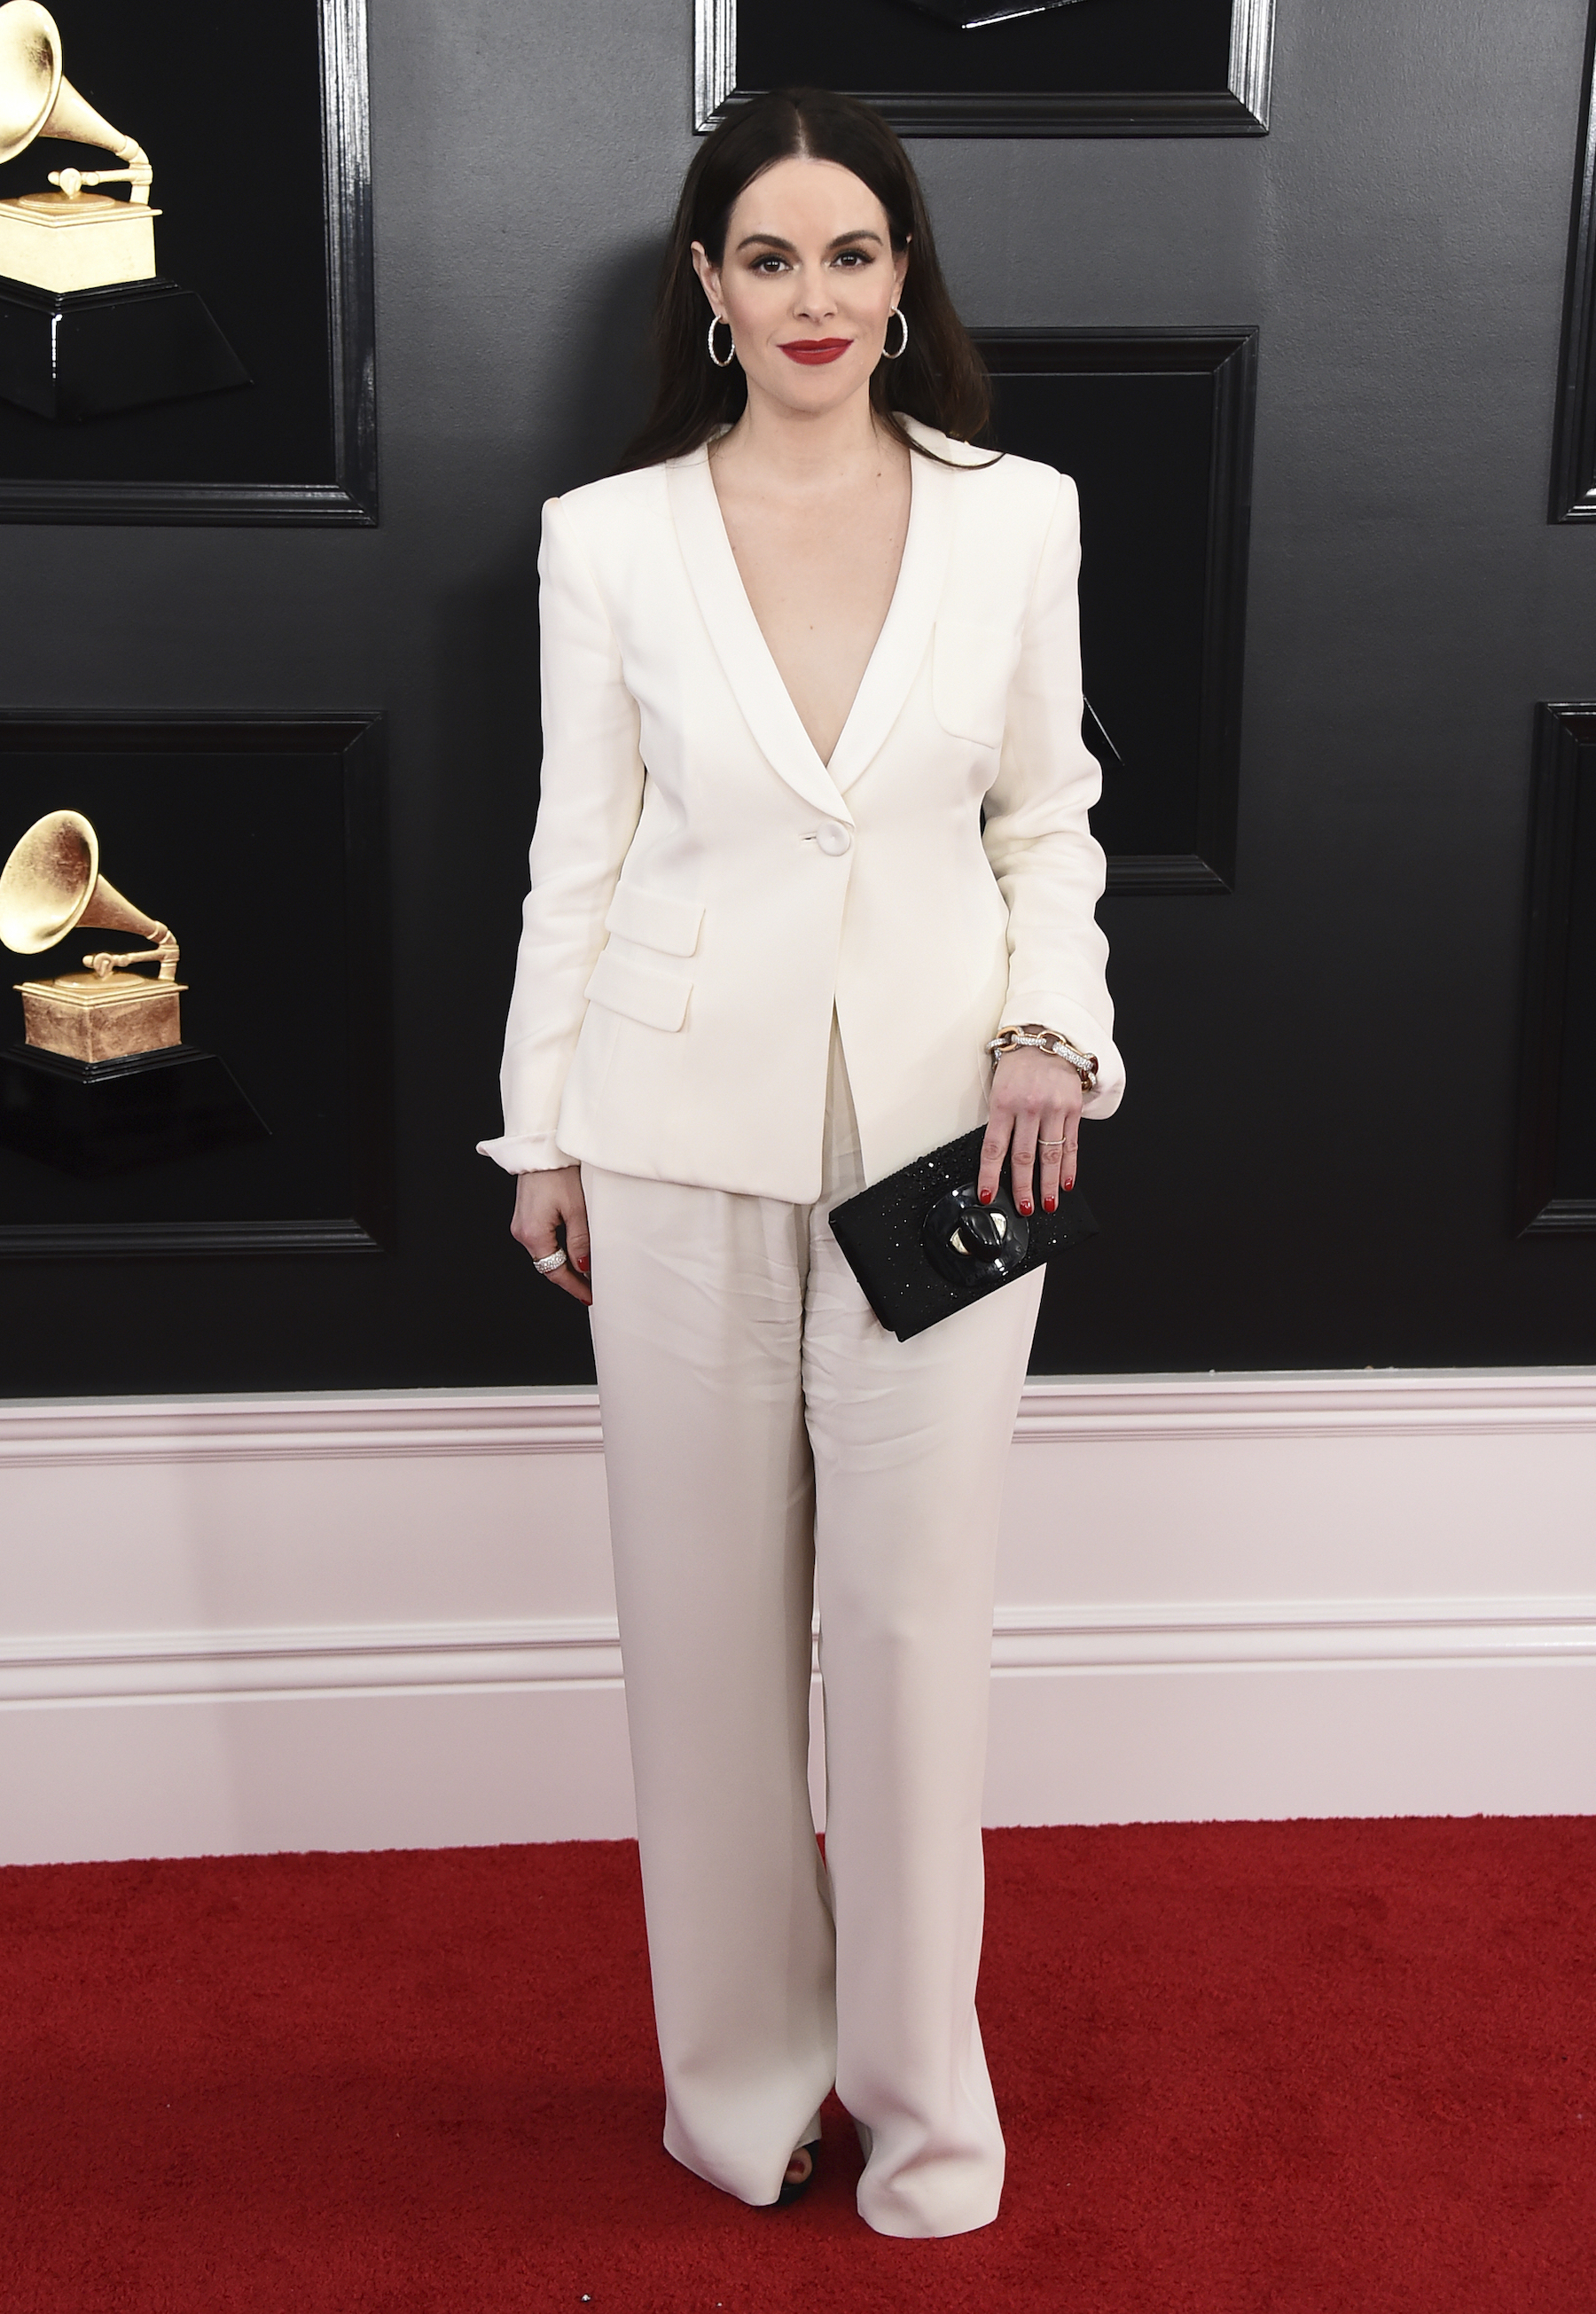 "<div class=""meta image-caption""><div class=""origin-logo origin-image ap""><span>AP</span></div><span class=""caption-text"">Emily Hampshire arrives at the 61st annual Grammy Awards at the Staples Center on Sunday, Feb. 10, 2019, in Los Angeles. (Jordan Strauss/Invision/AP)</span></div>"